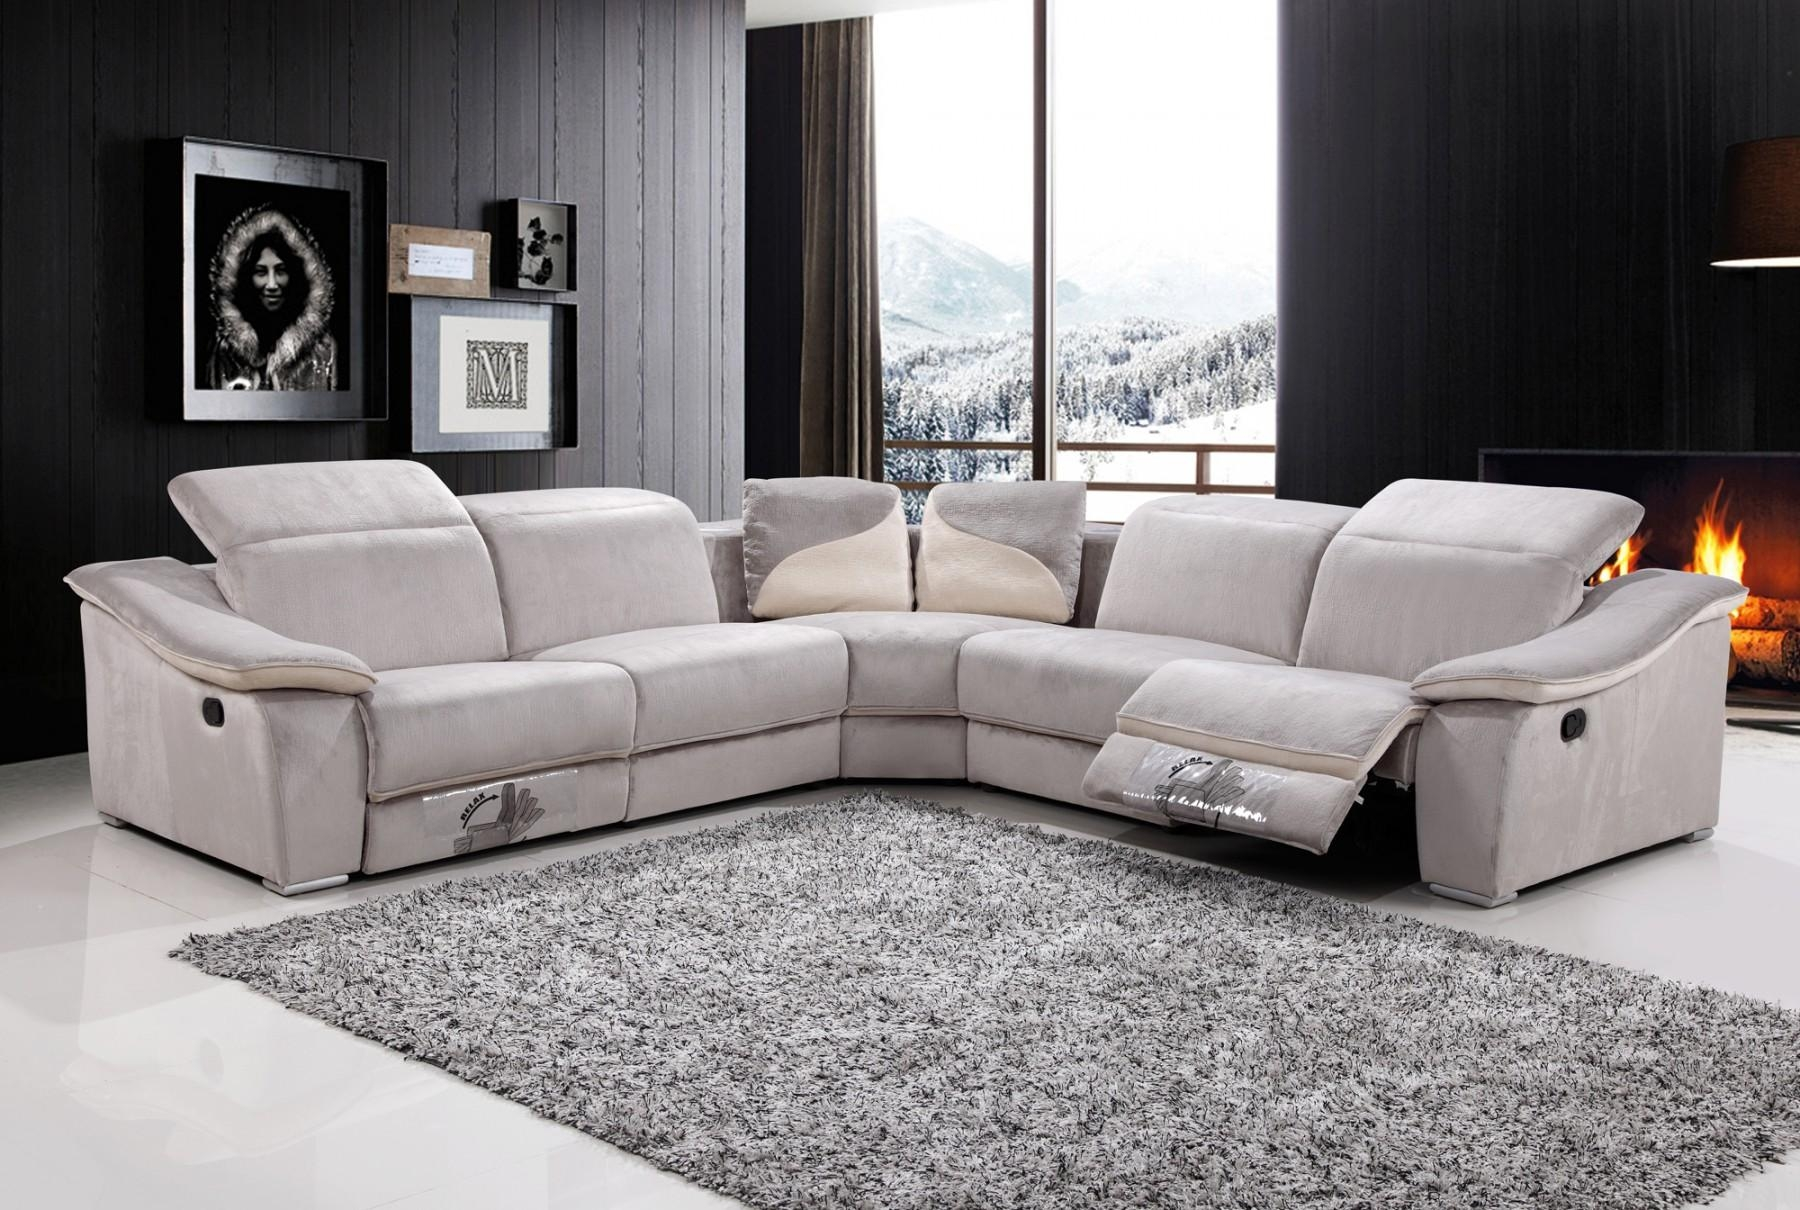 Sofas Center : High Quality Sectional Sofa Brandsquality Azbest Regarding The Bay Sofas (Image 14 of 20)